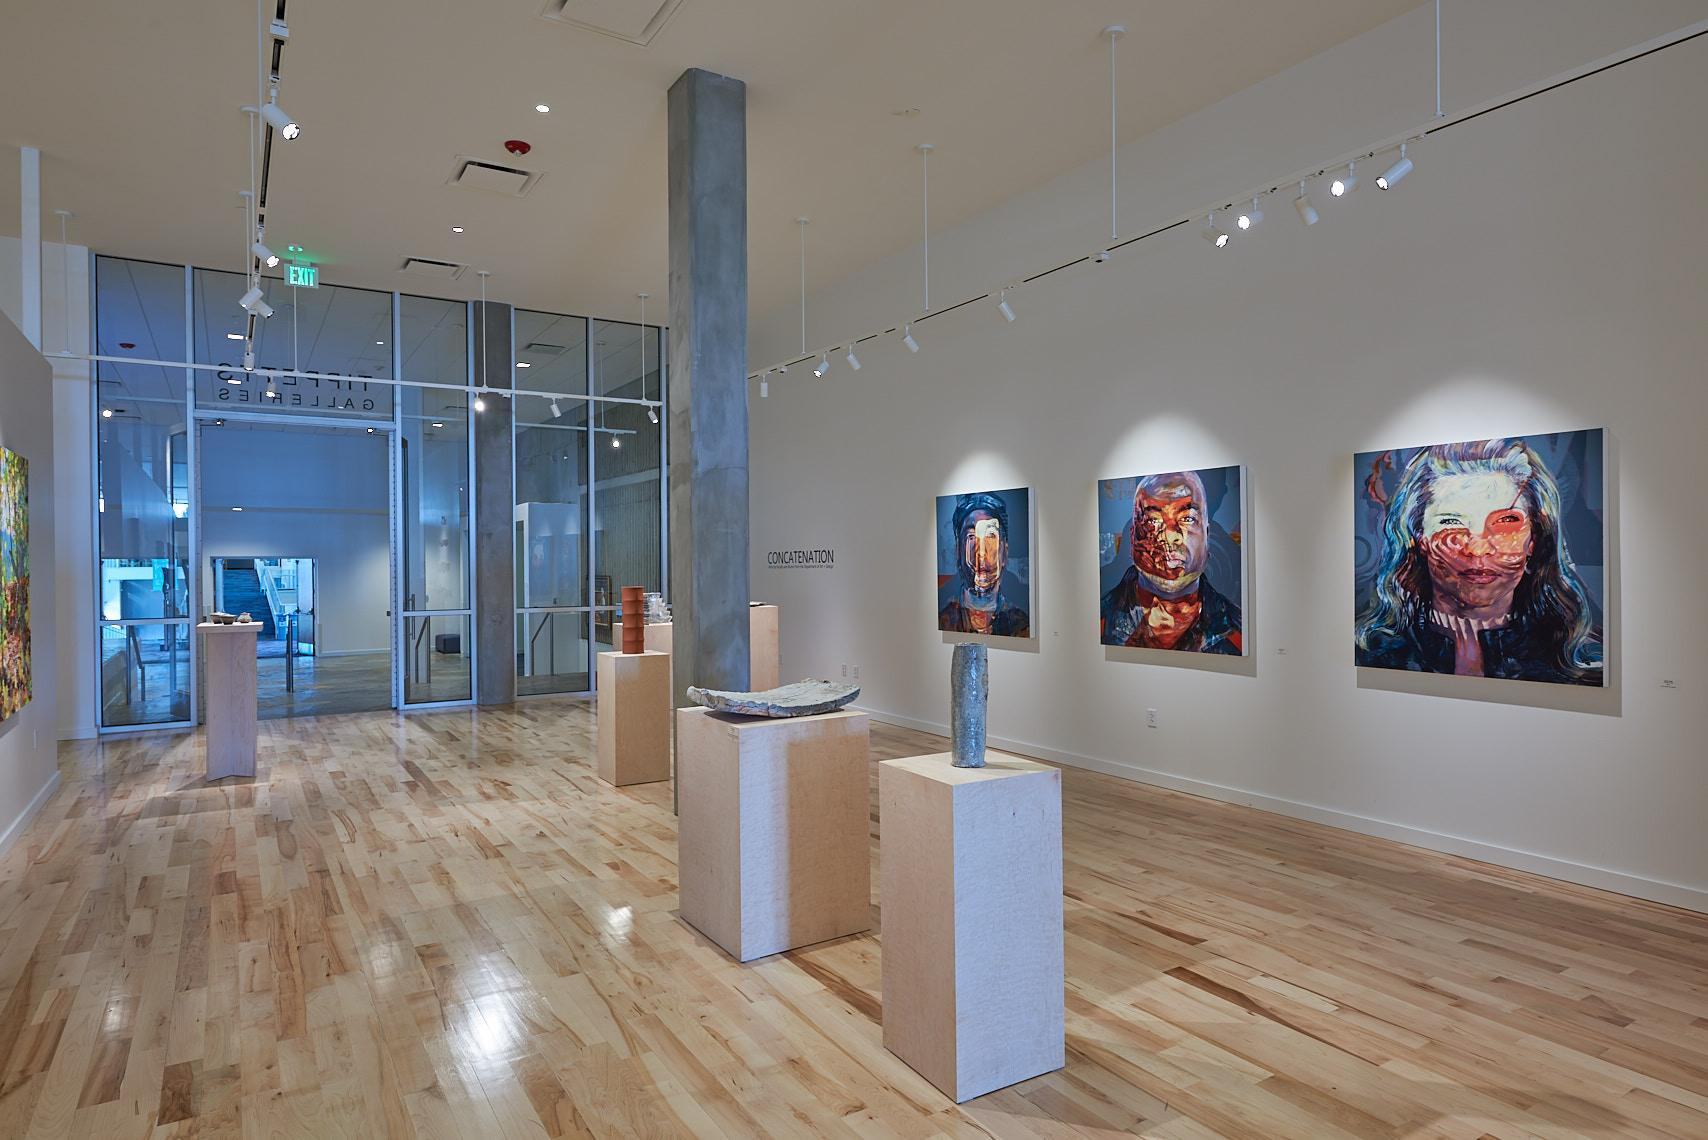 SparanoMooneyArchitecture_Tippetts Galleries_View 2.JPG